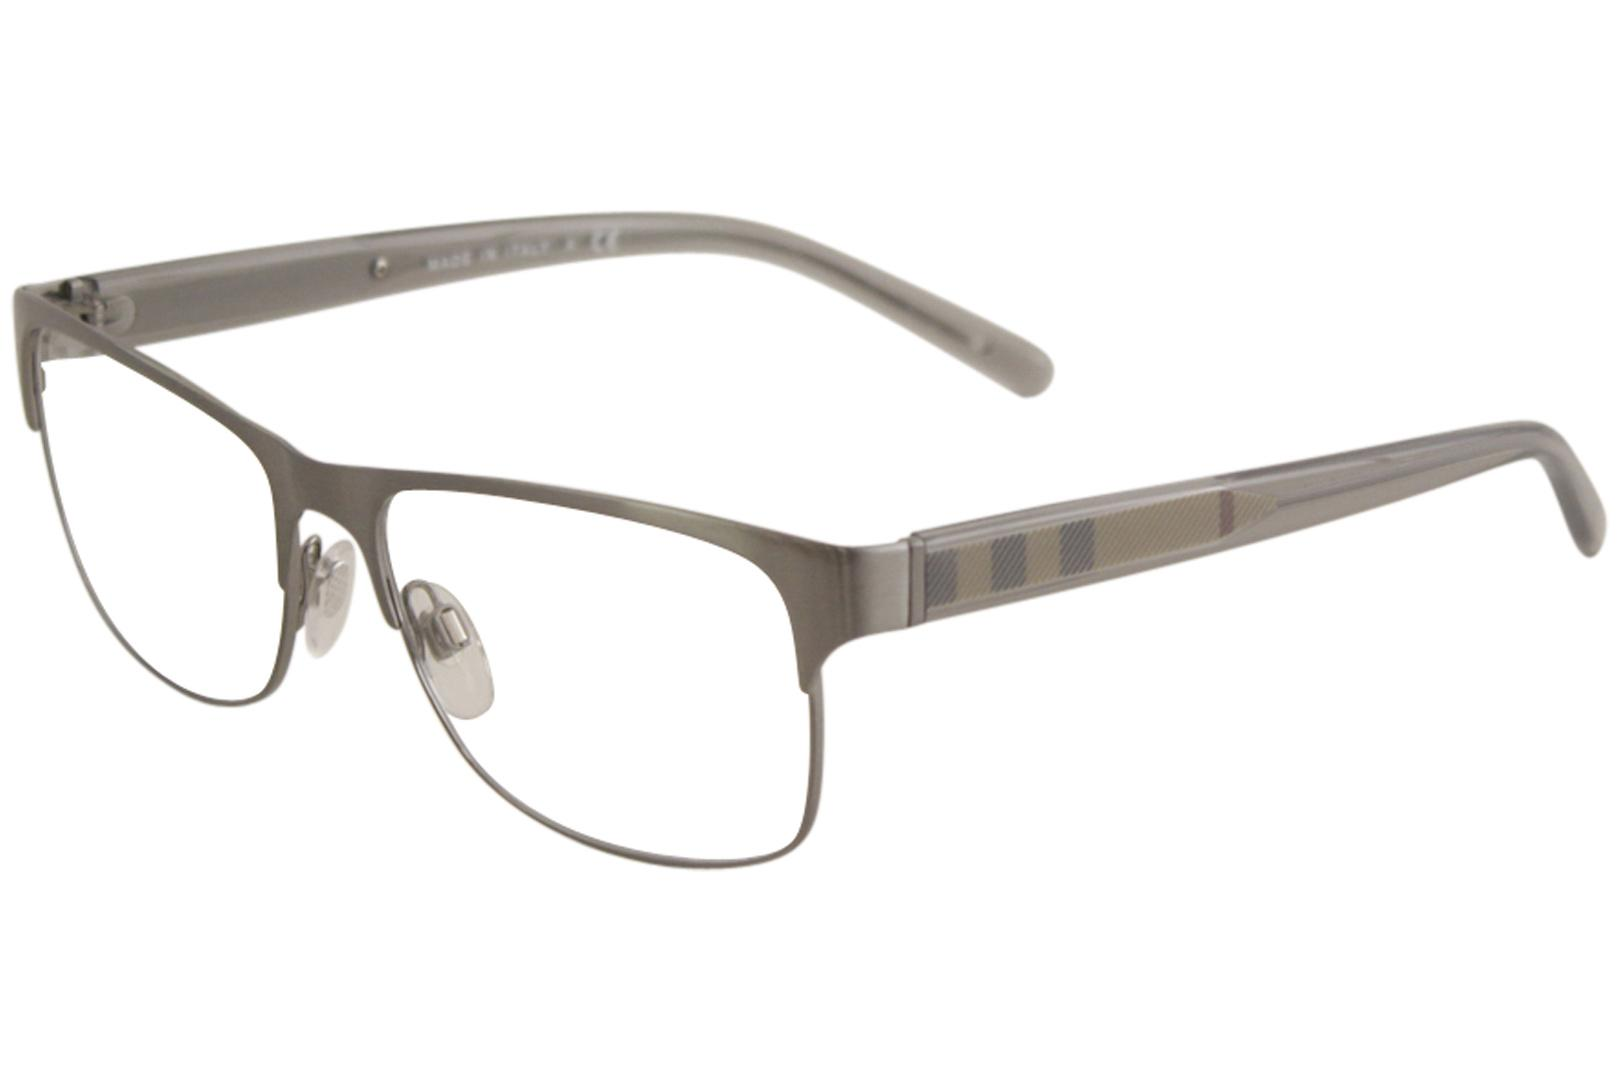 6882cad656b5 Burberry Men's Eyeglasses BE1289 BE/1289 Full Rim Optical Frame by Burberry